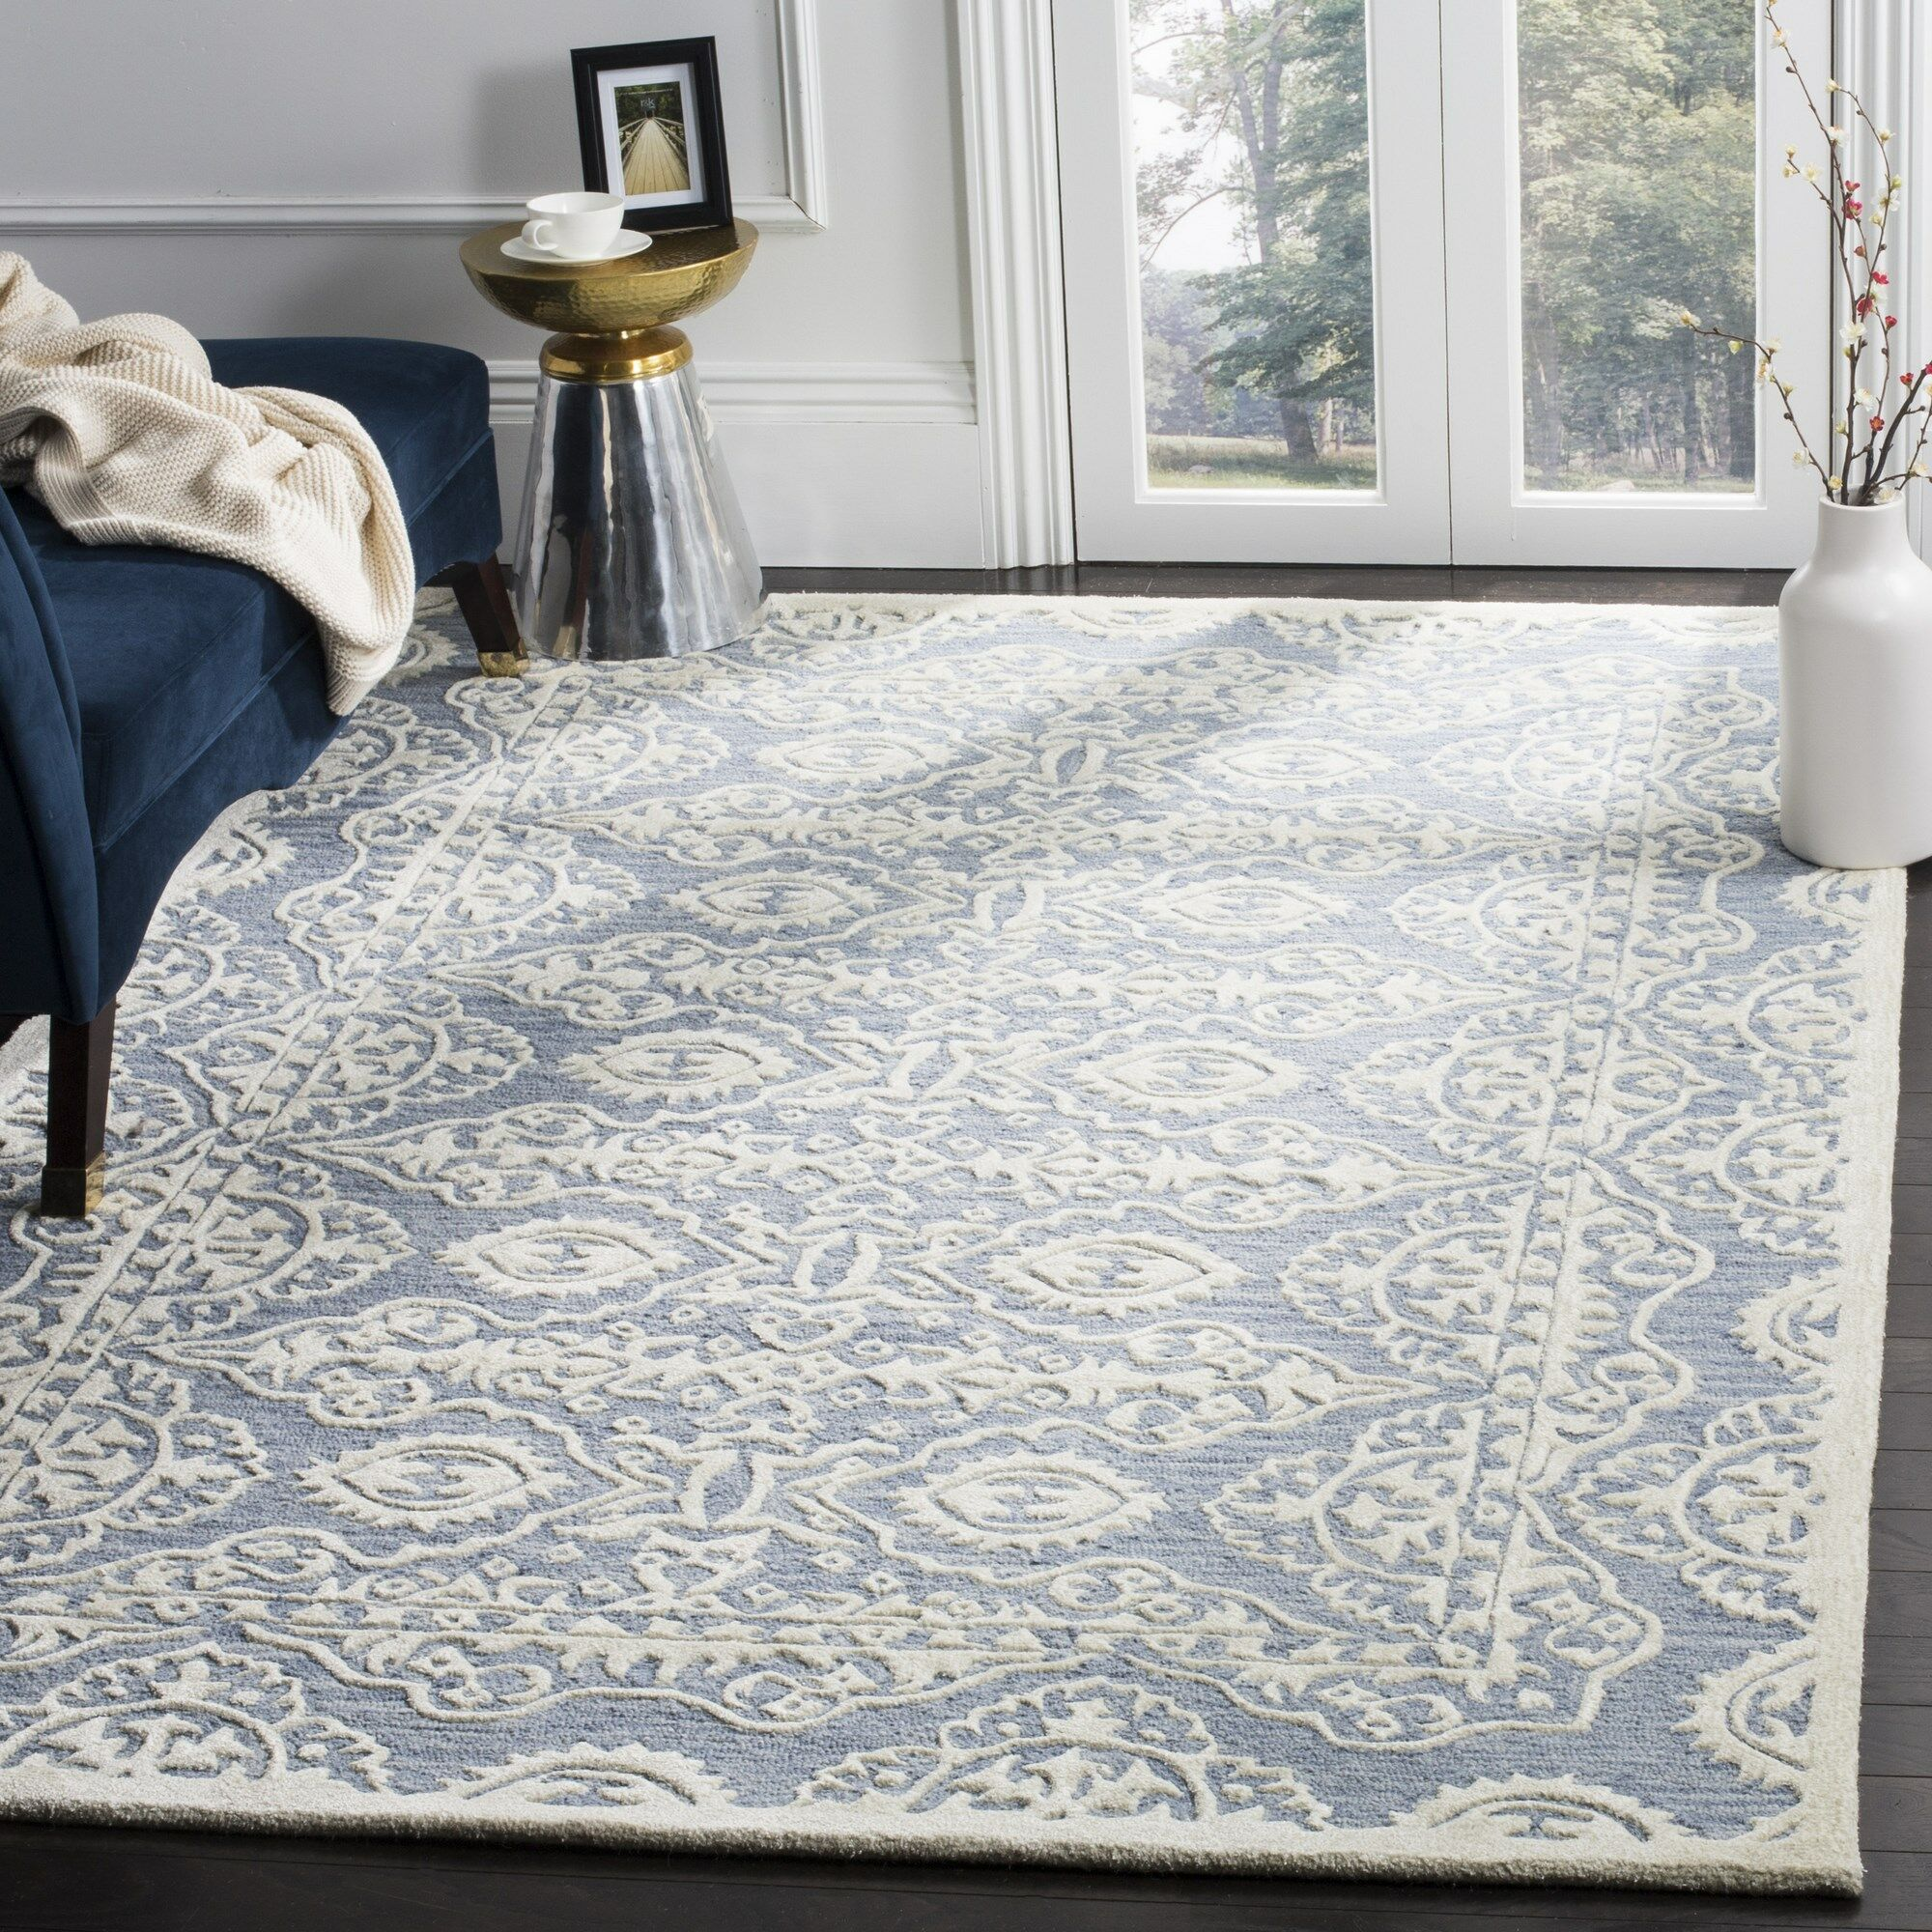 Amundson Hand-Tufted Blue/Ivory Area Rug Rug Size: Rectangle 6' x 9'